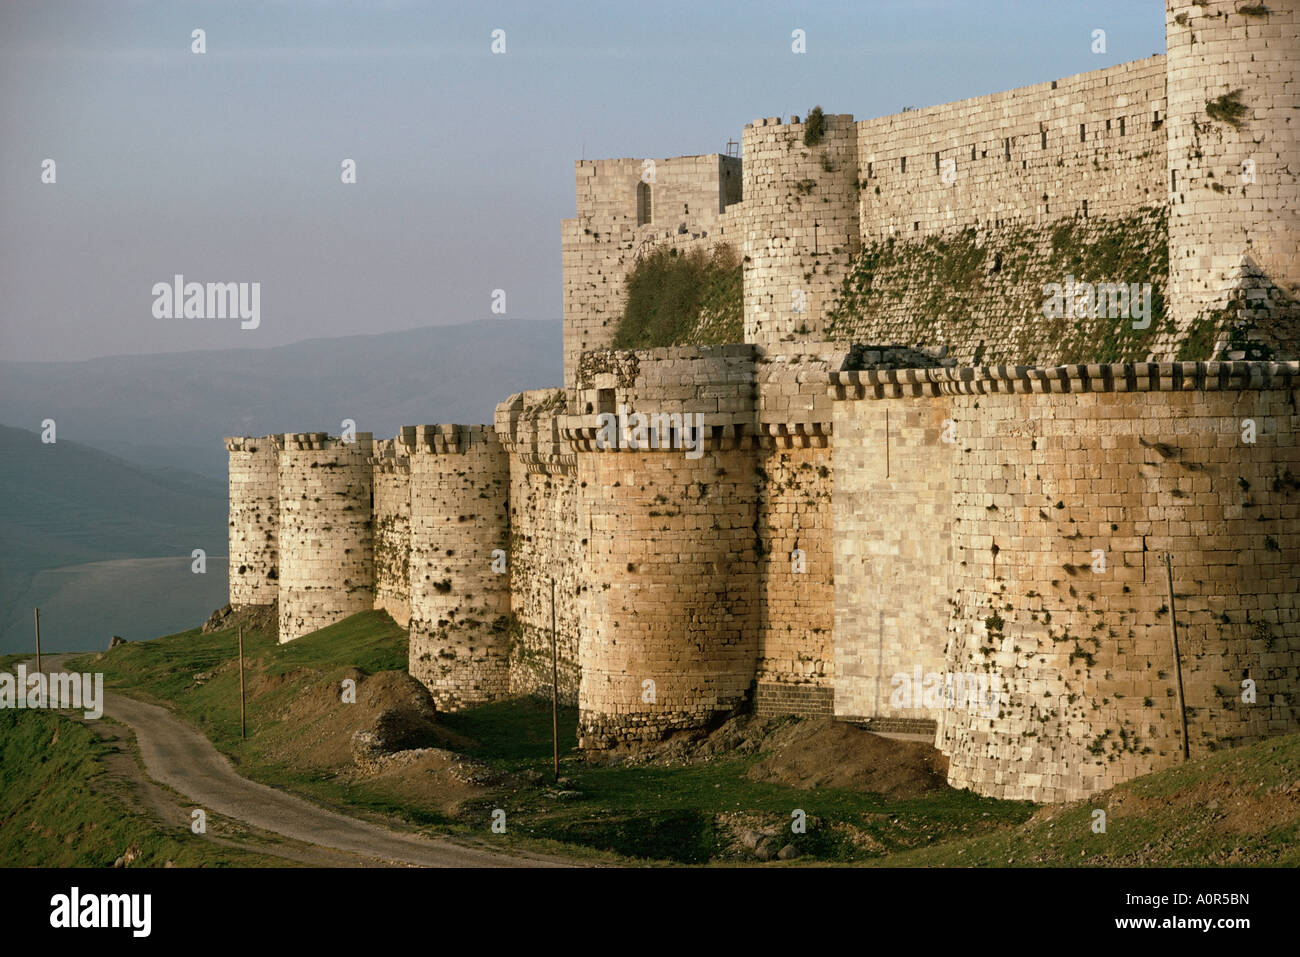 The Krak des Chevaliers Crusader castle Syria Middle East - Stock Image